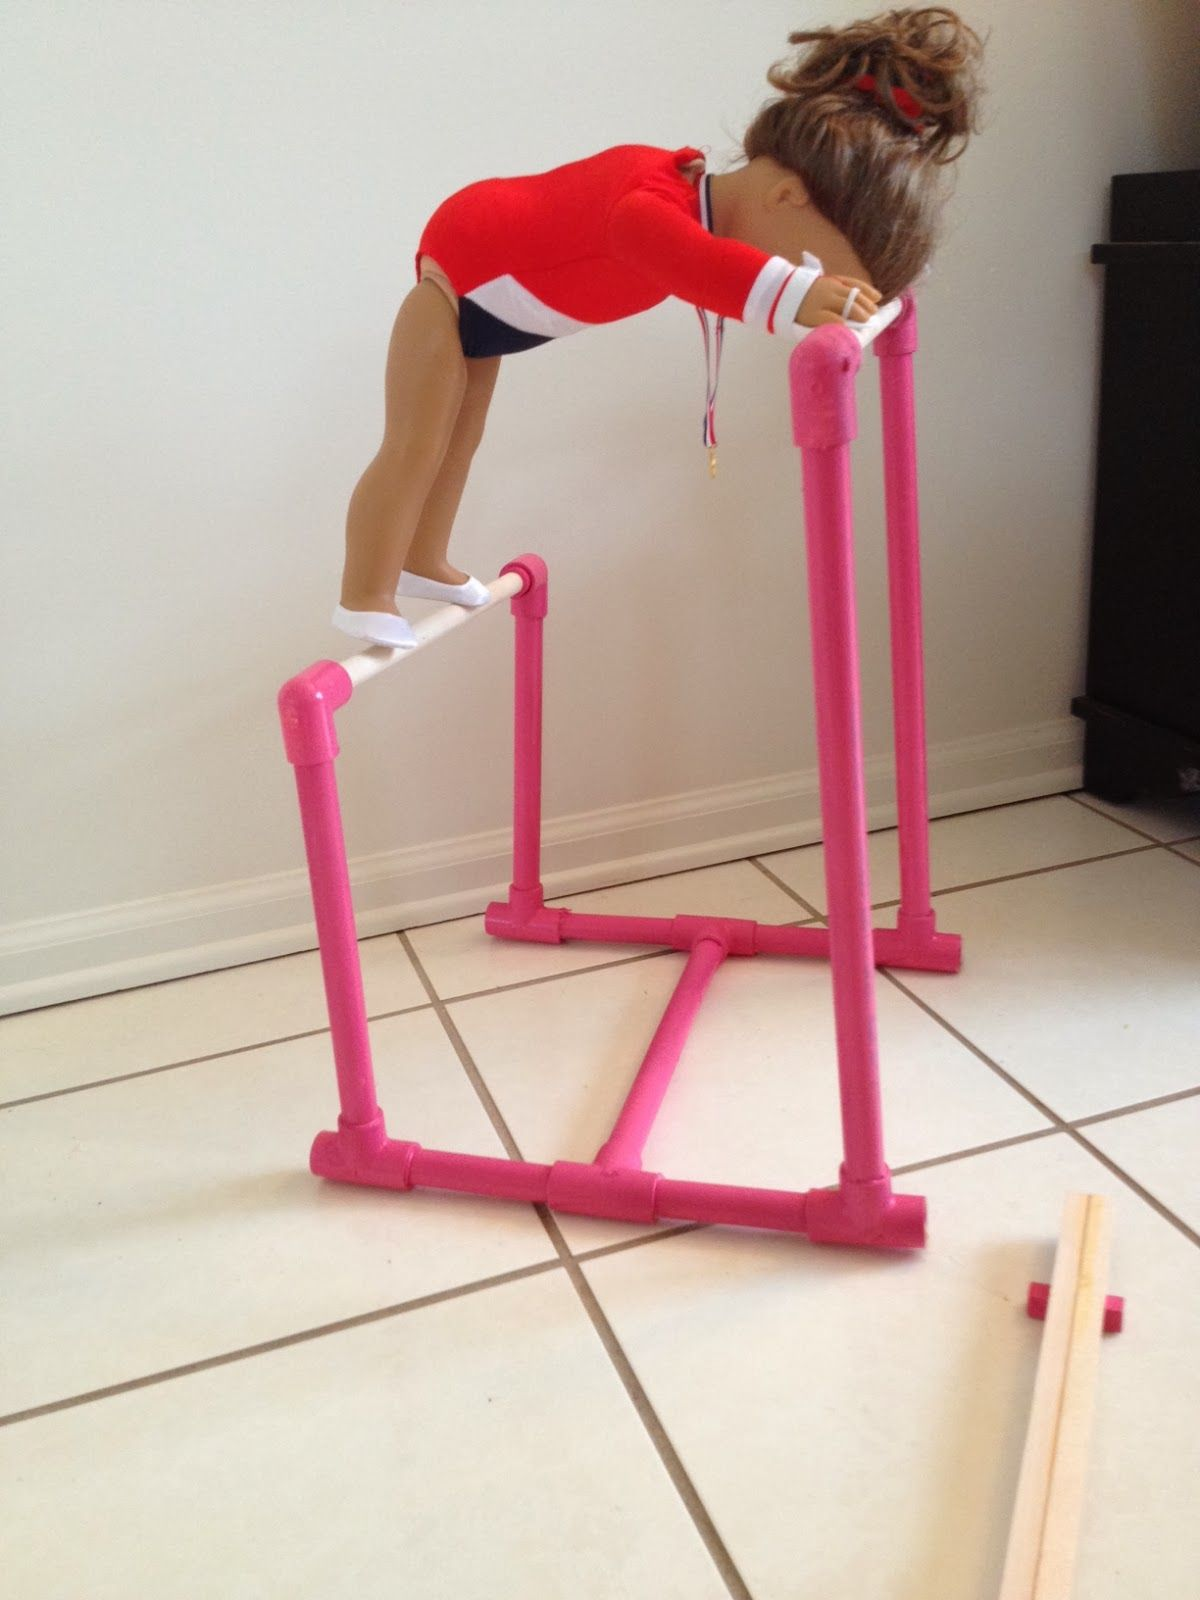 ffa5cb635990 Doll Gymnastics Equipment | ... beam ...this is even even easier than the  knockoff doll uneven bars